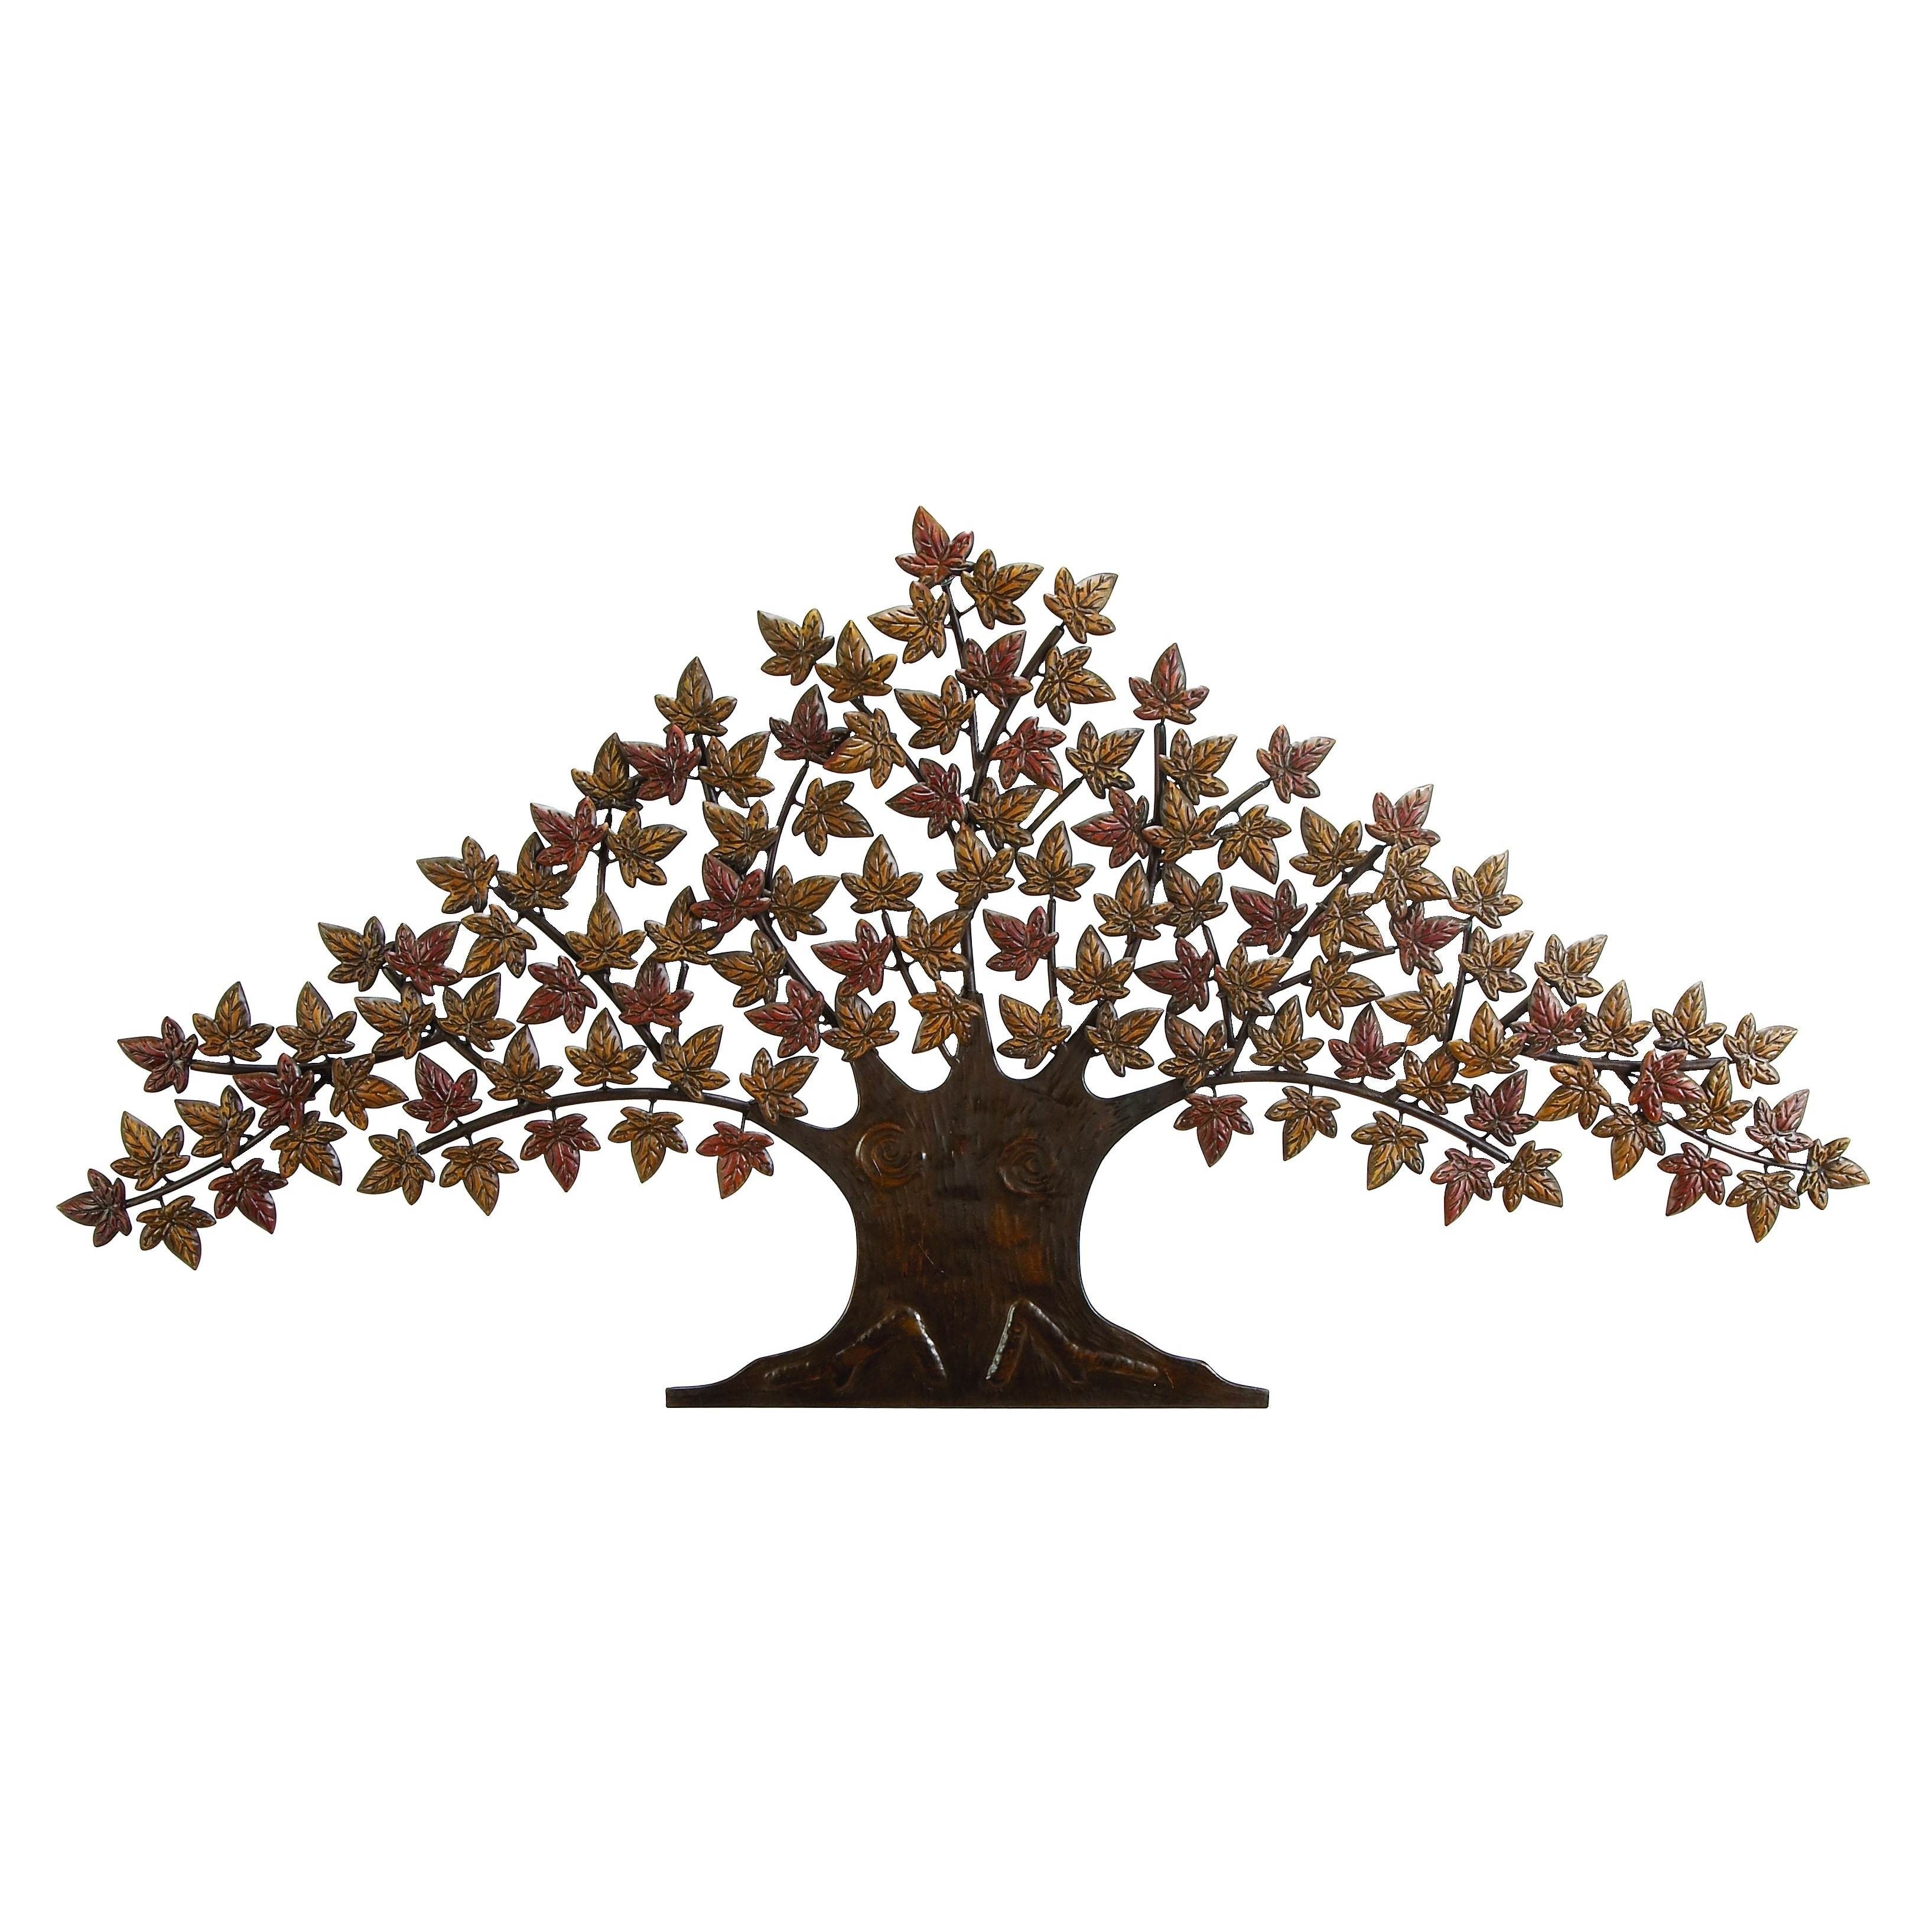 Metal Tree Wall Decor Large Family Decal For Home Bedroom ...